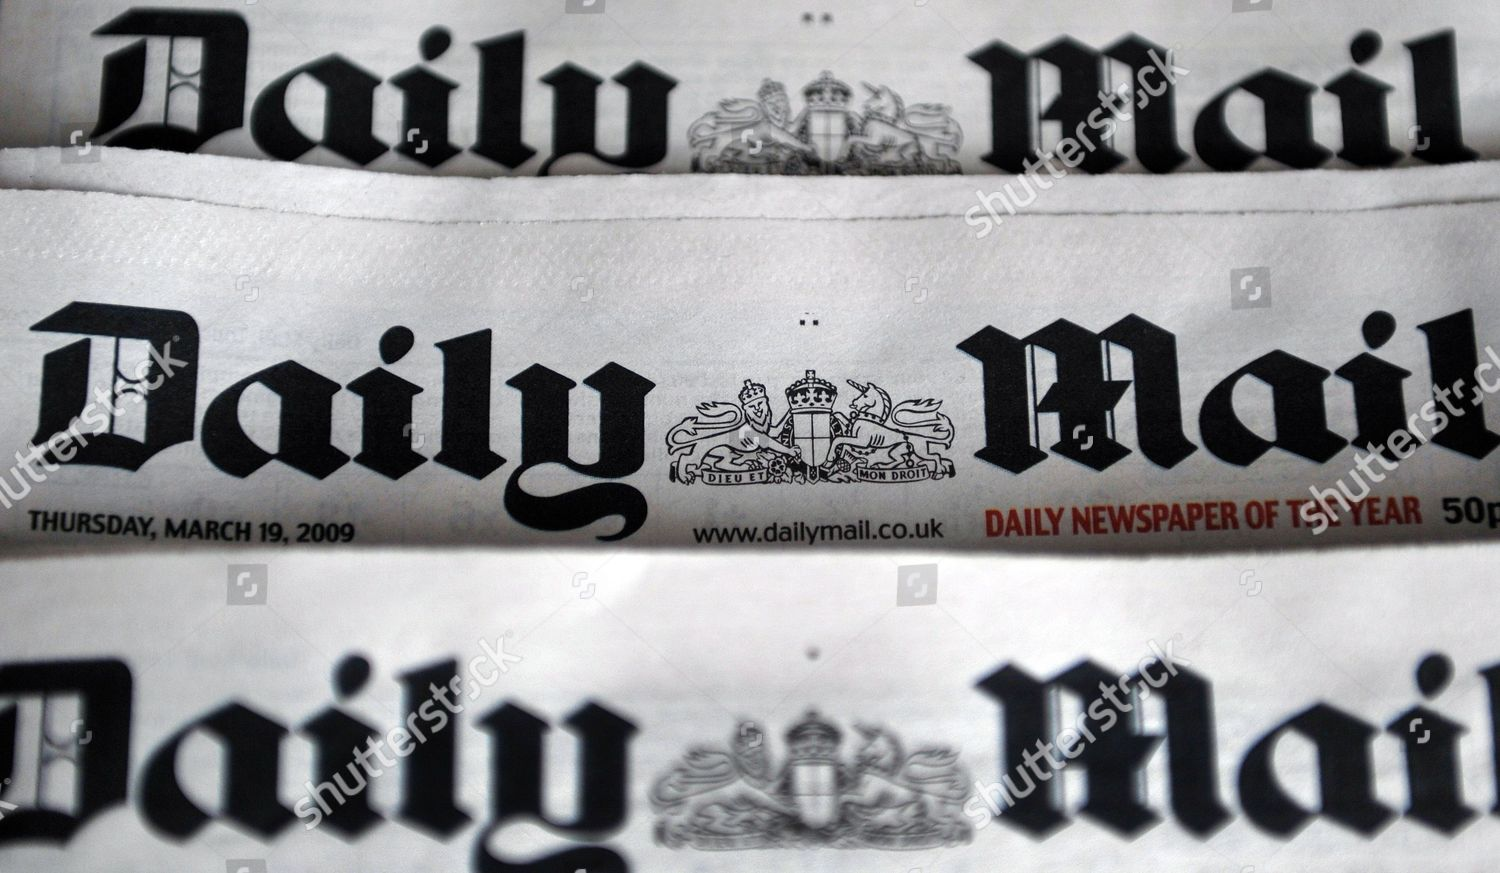 British Newspaper Daily Mail Pictured Here London Editorial